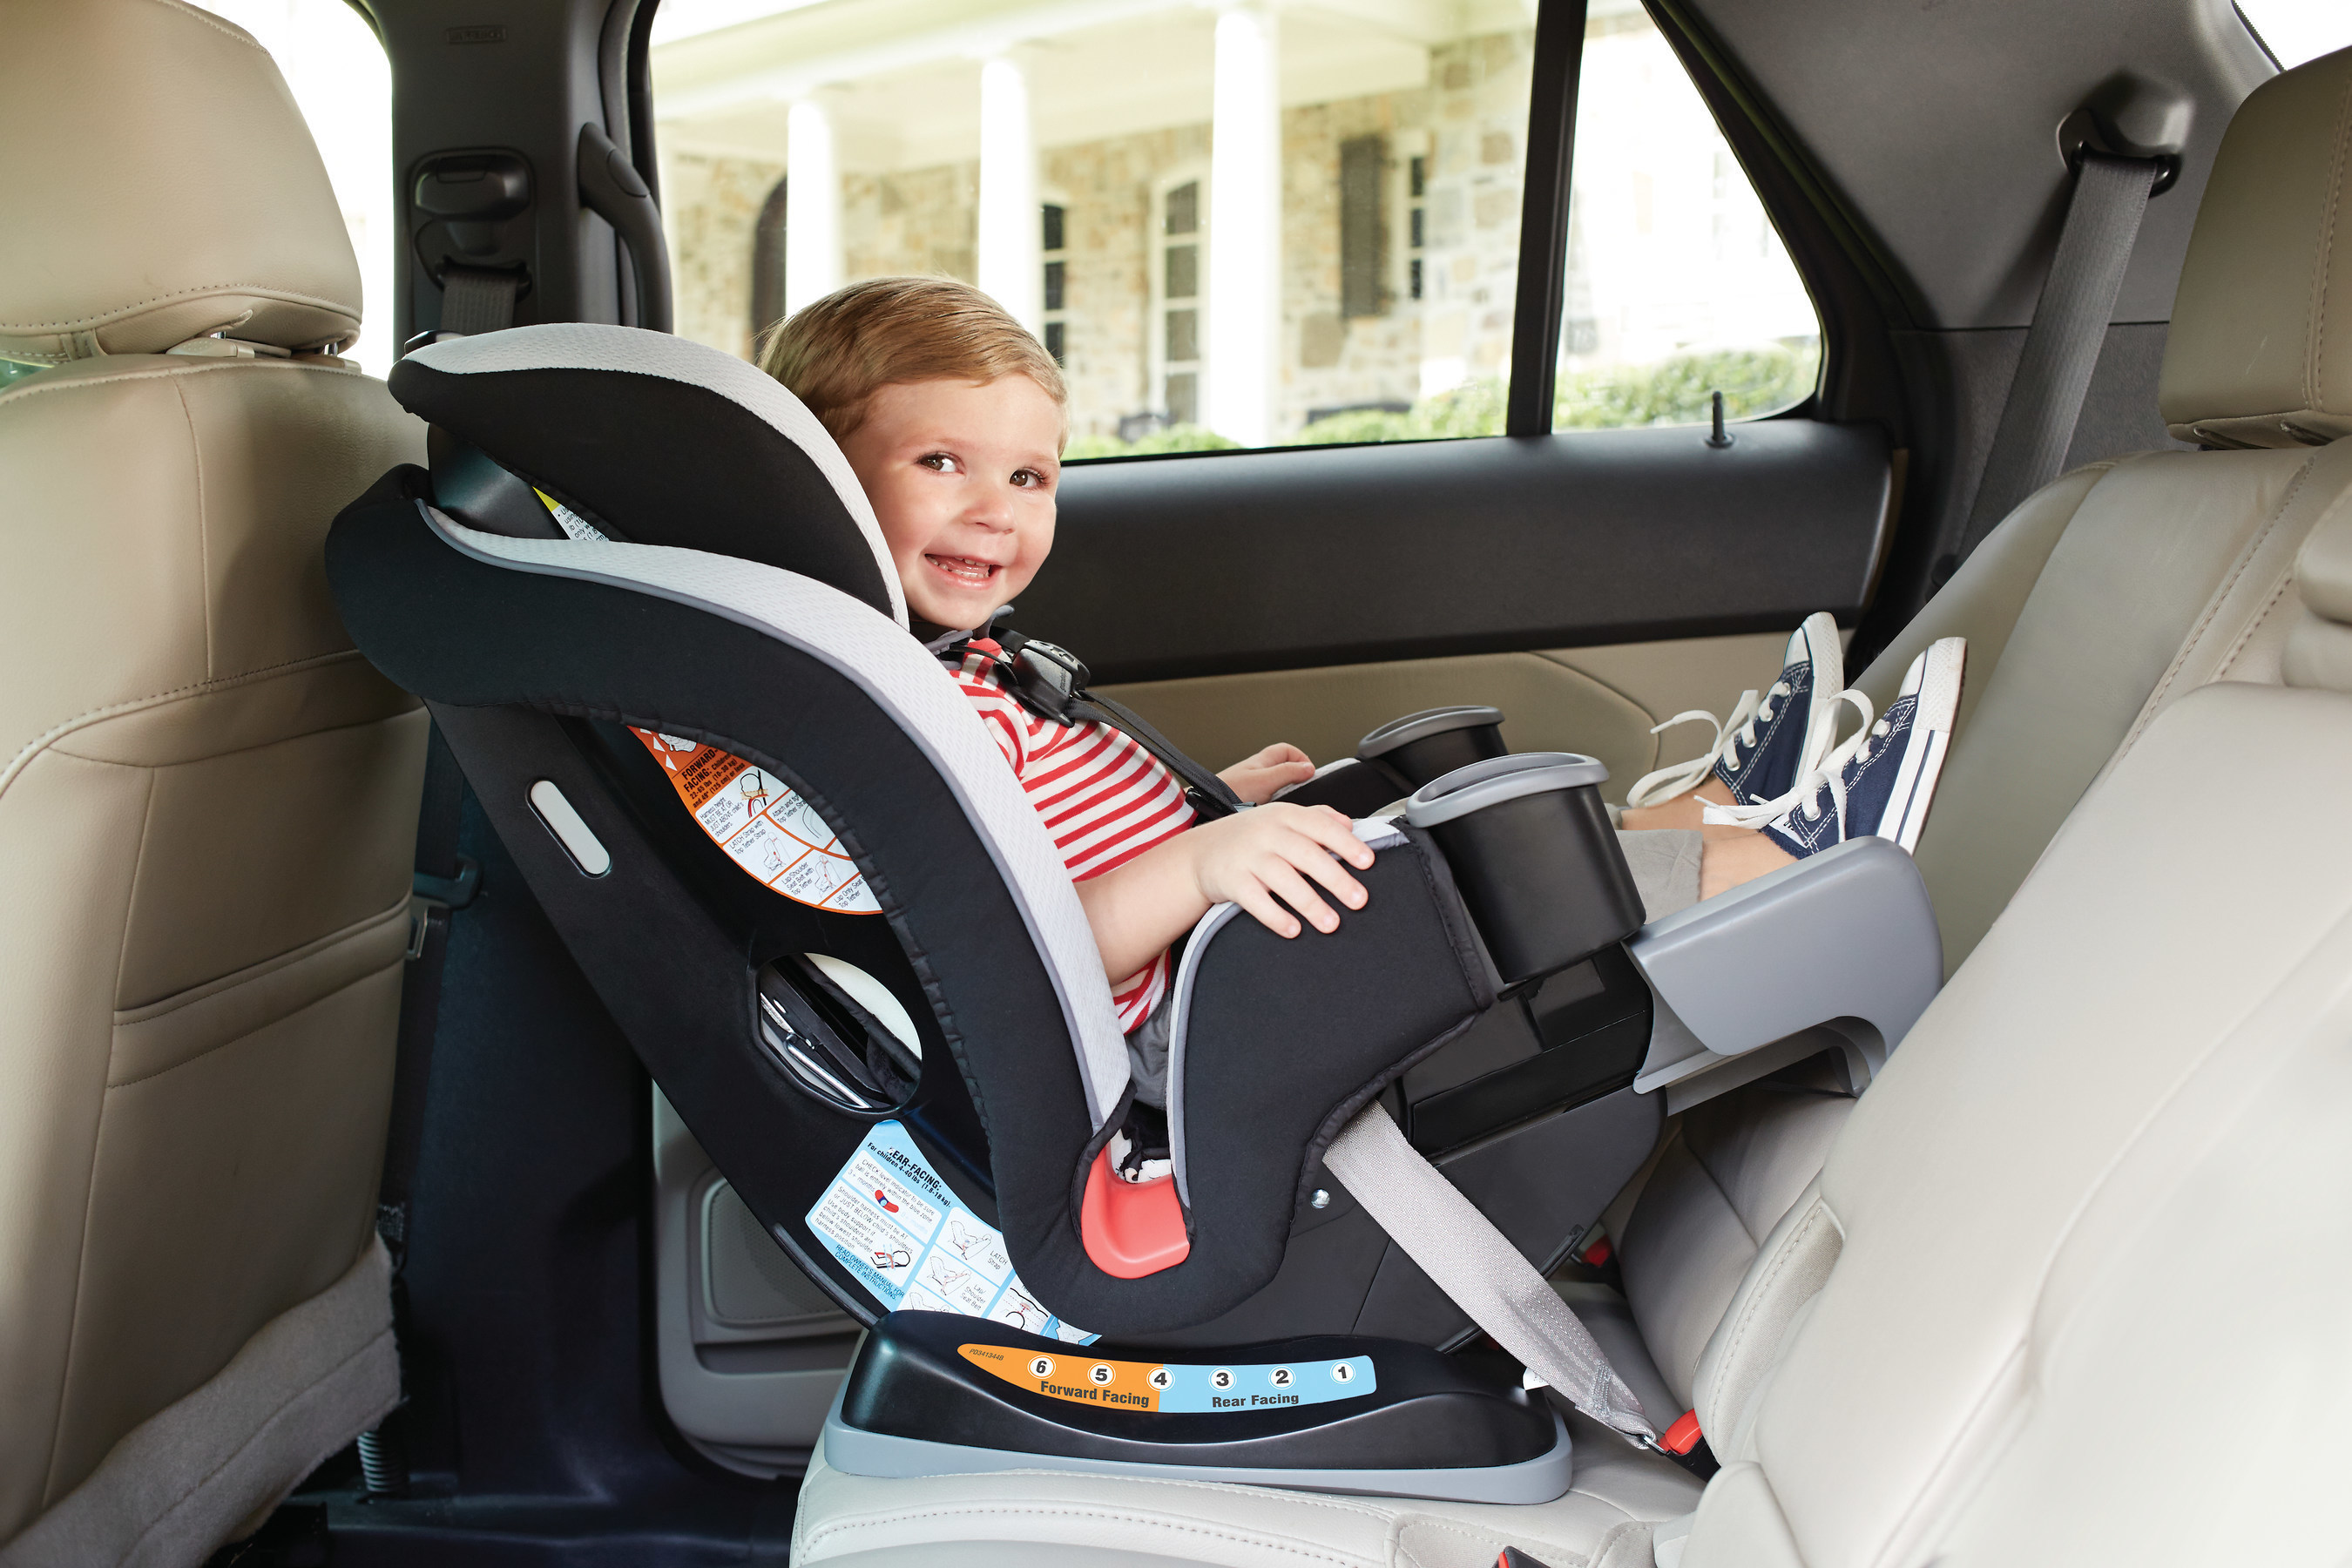 New Graco Extend2fitTM 3 In 1 Car Seat Maximizes Safety And